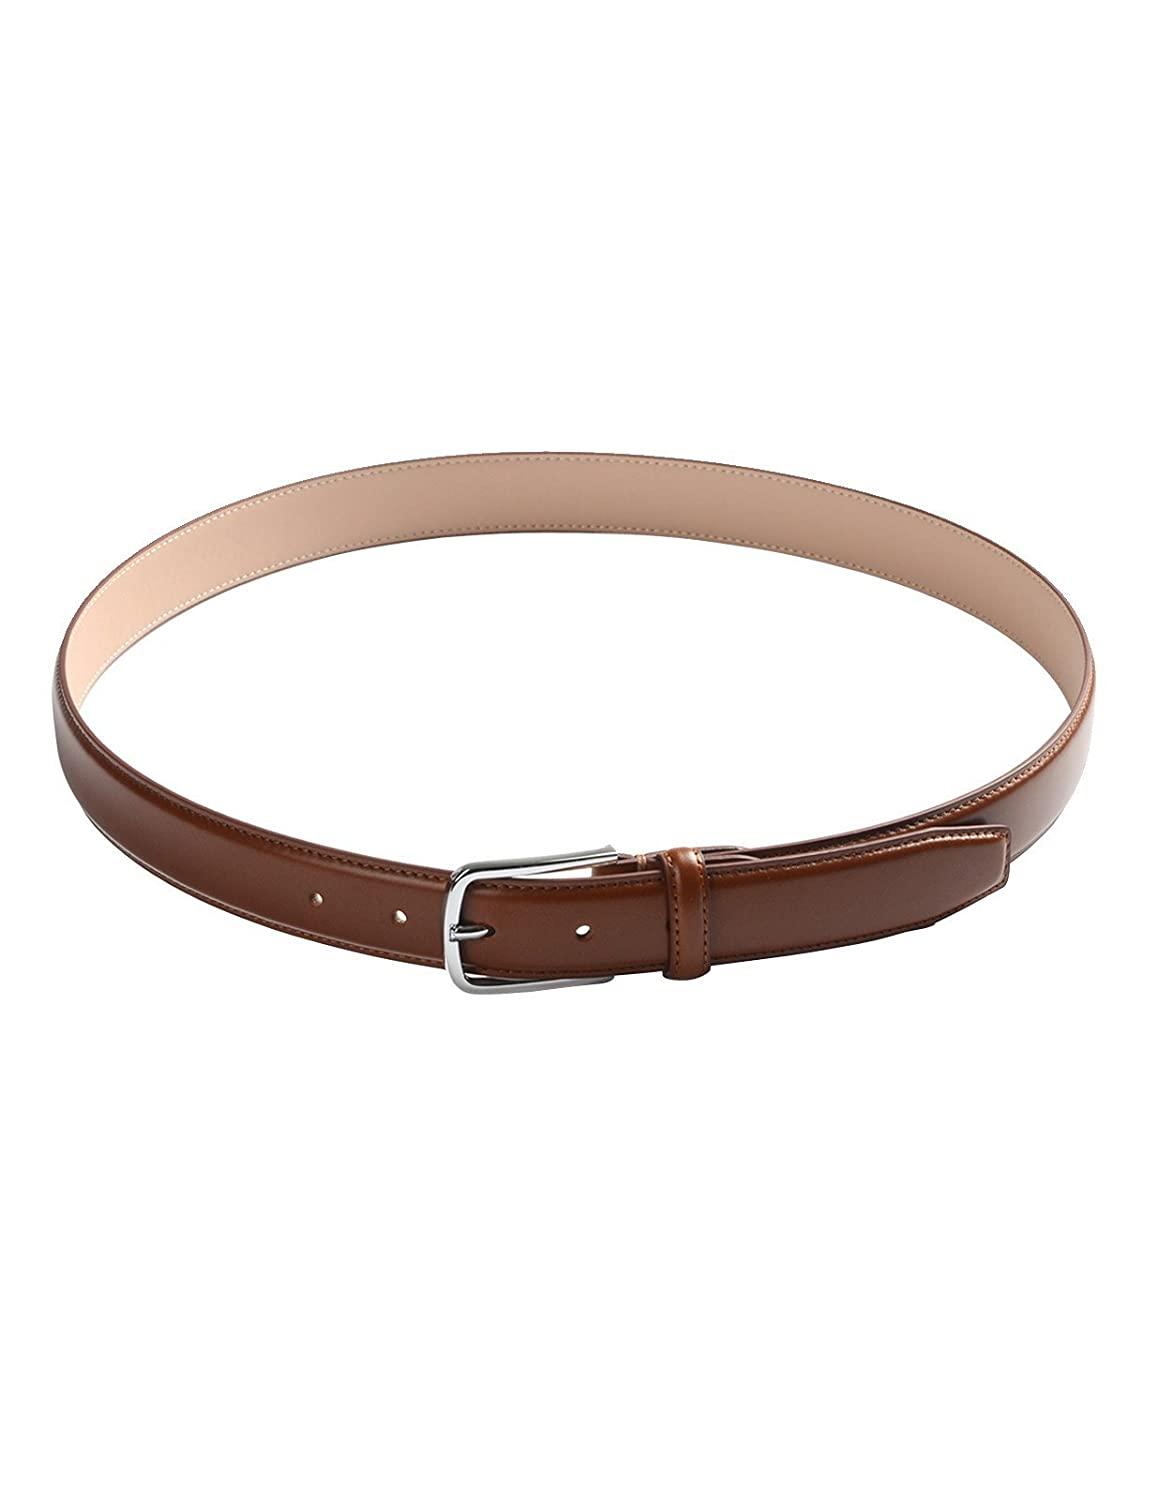 FLATSEVEN Mens Leather Classic Dress Belt with Buckle